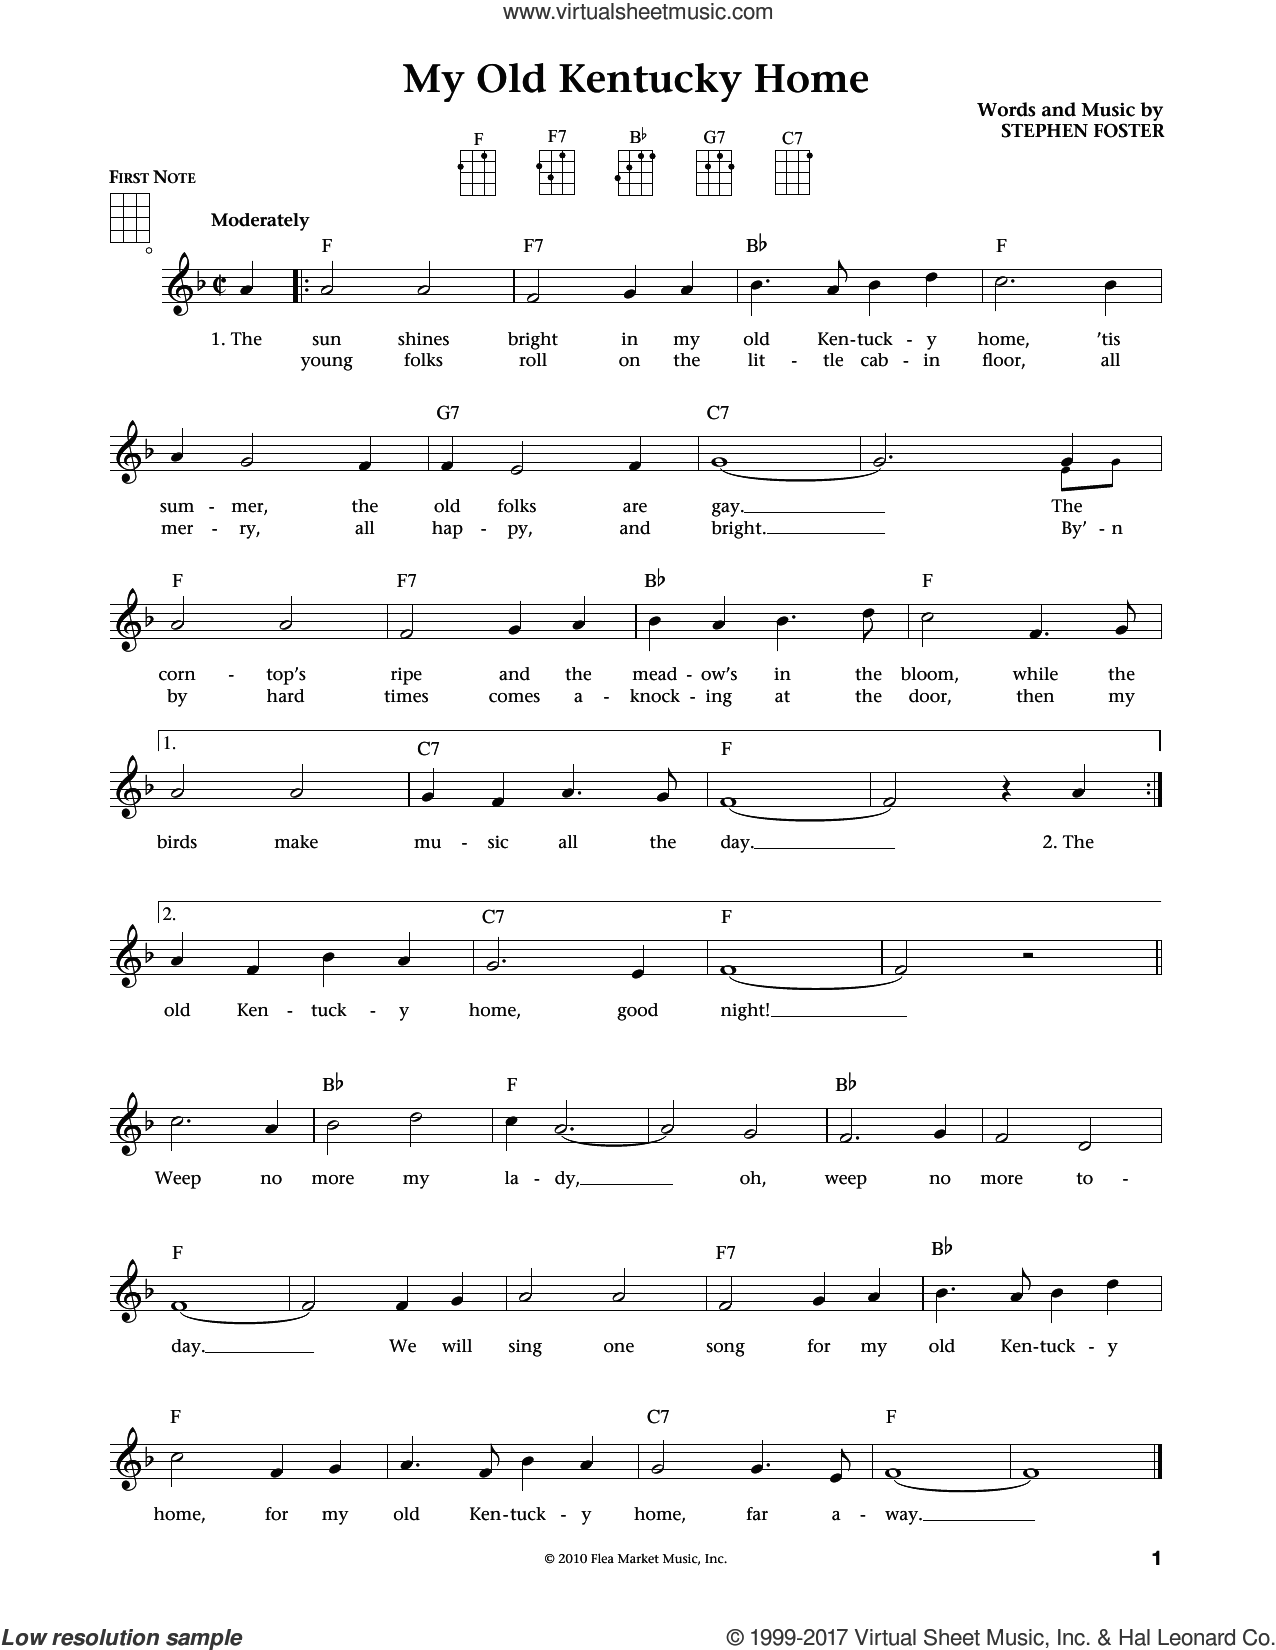 My Old Kentucky Home (from The Daily Ukulele) (arr. Liz and Jim Beloff) sheet music for ukulele by Stephen Foster, Jim Beloff and Liz Beloff, intermediate skill level